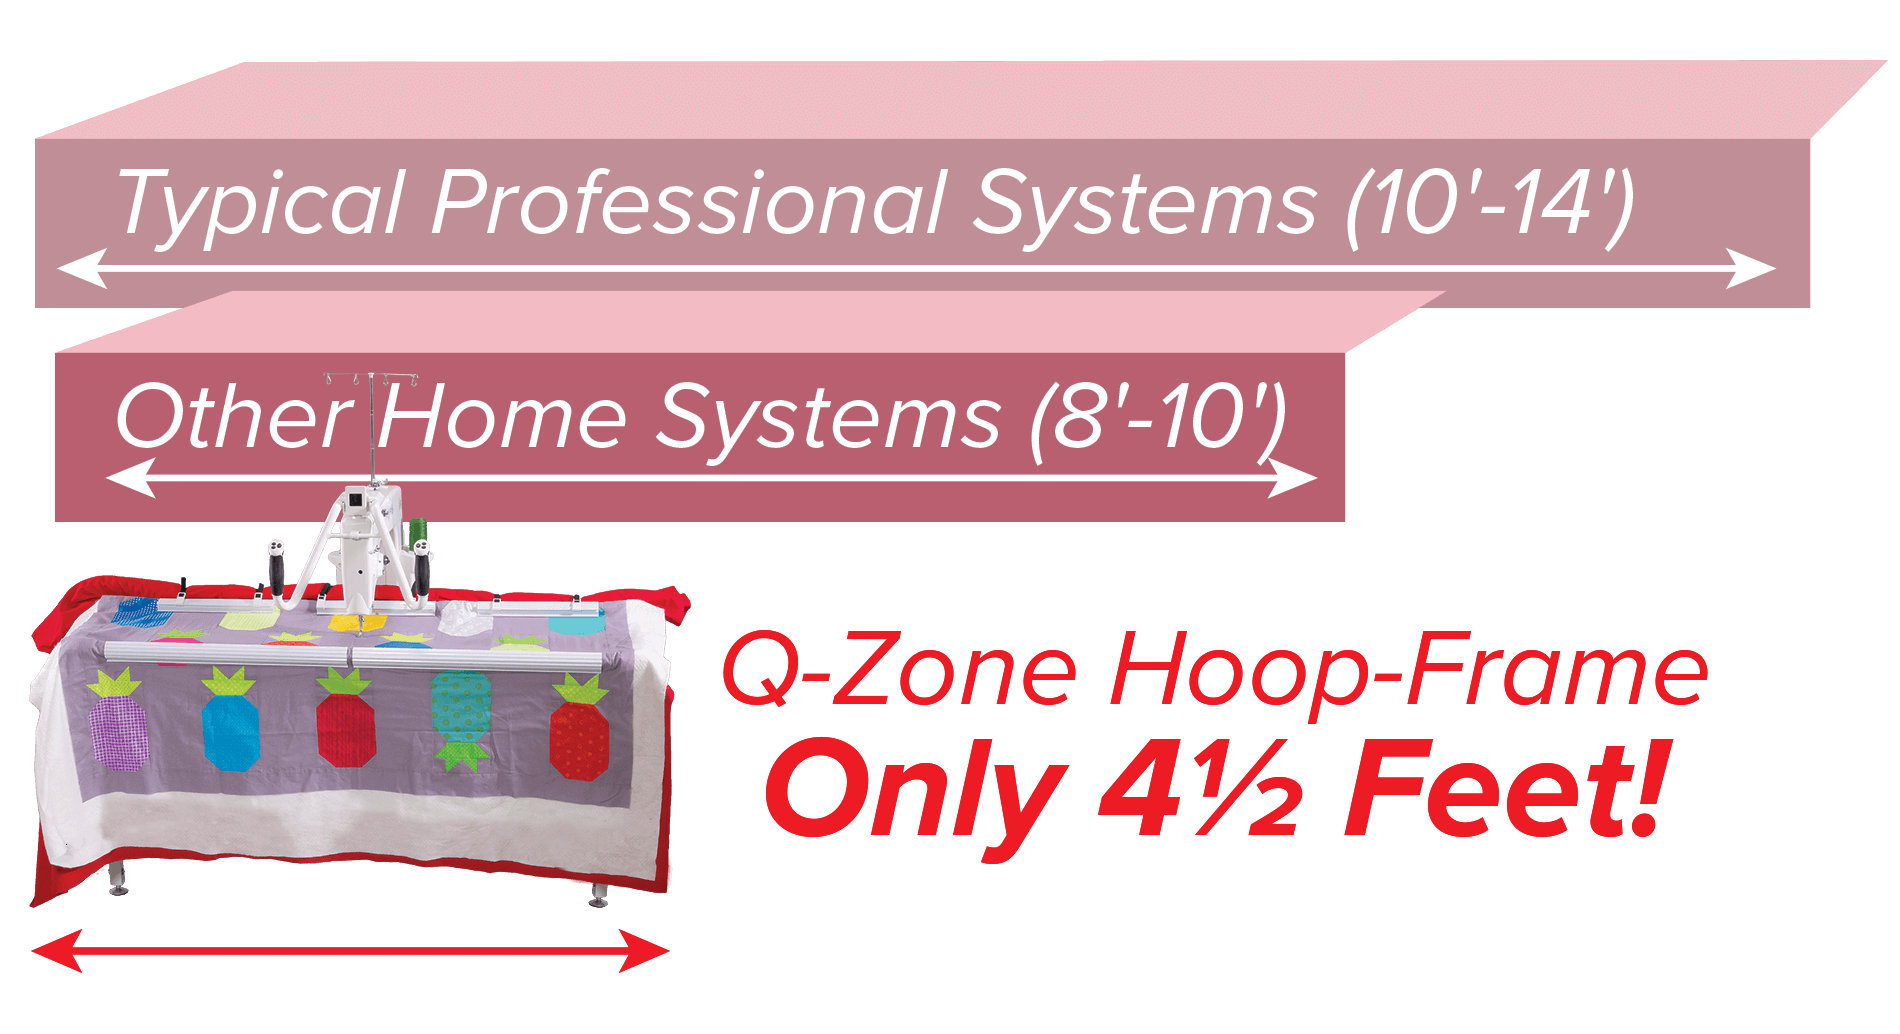 Q-Zone Hoop-Frame small size compared to other frames